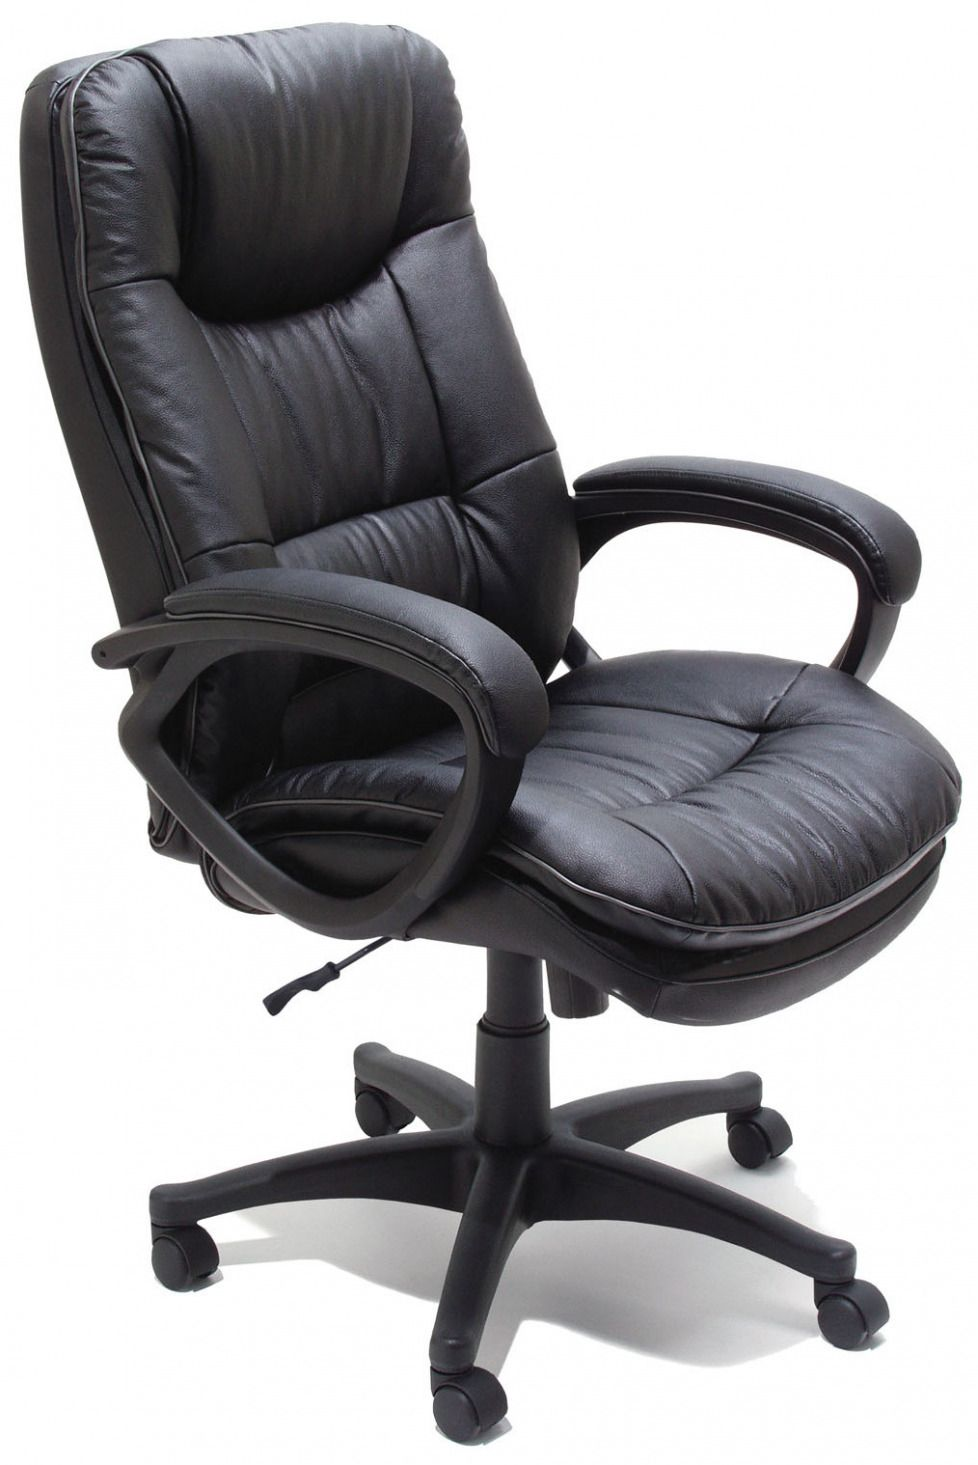 55 True Seating Concepts Leather Executive Chair Used Home Office Furniture Check More At